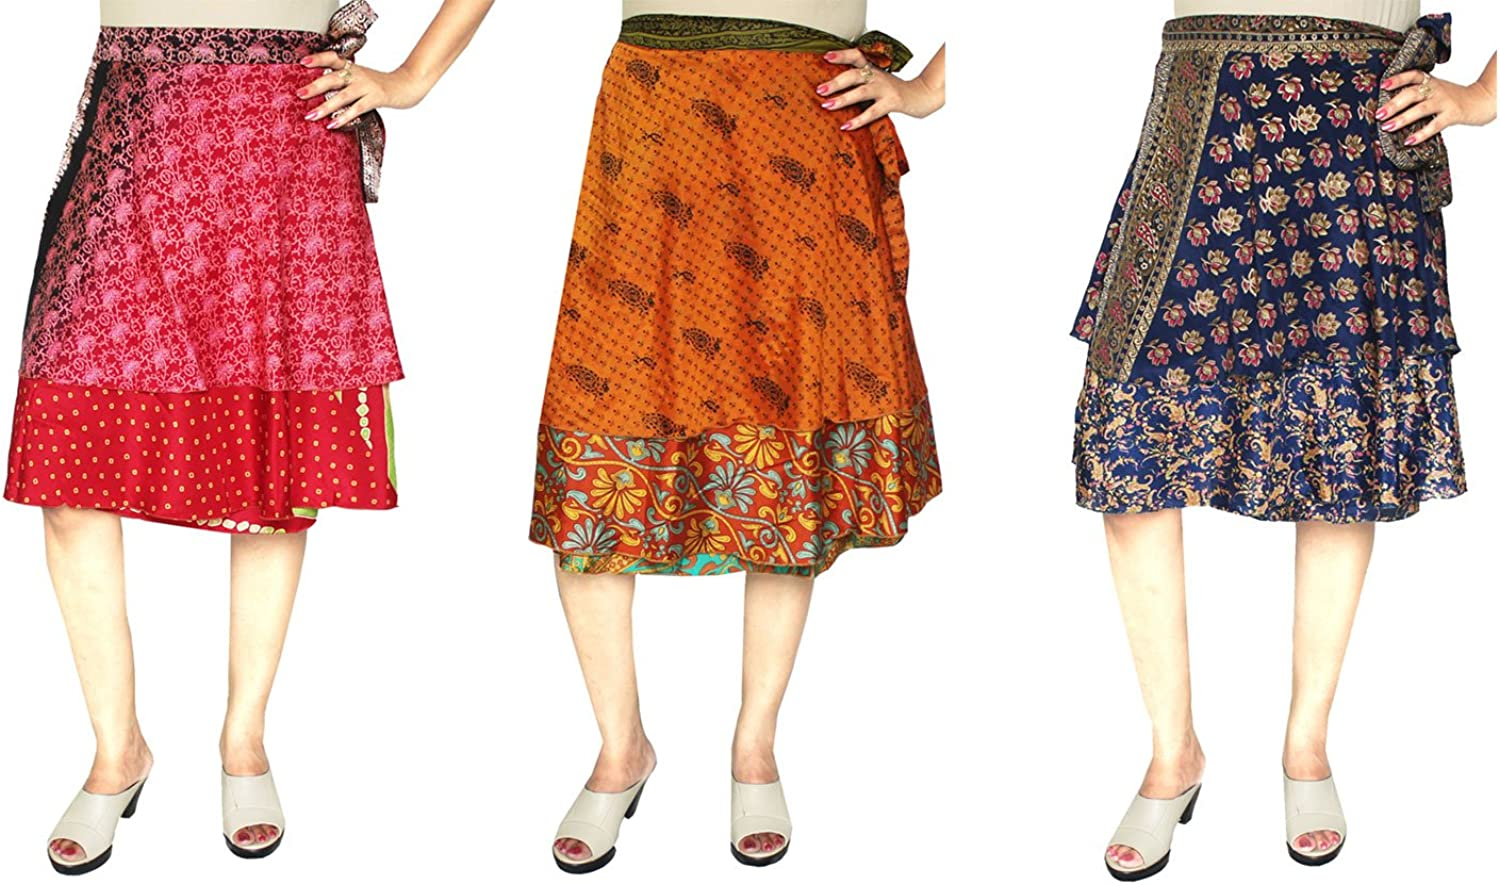 Maple Clothing Wholesale 3 Pcs Lot Two Layers Womens Indian Sari Magic Wrap Skirt